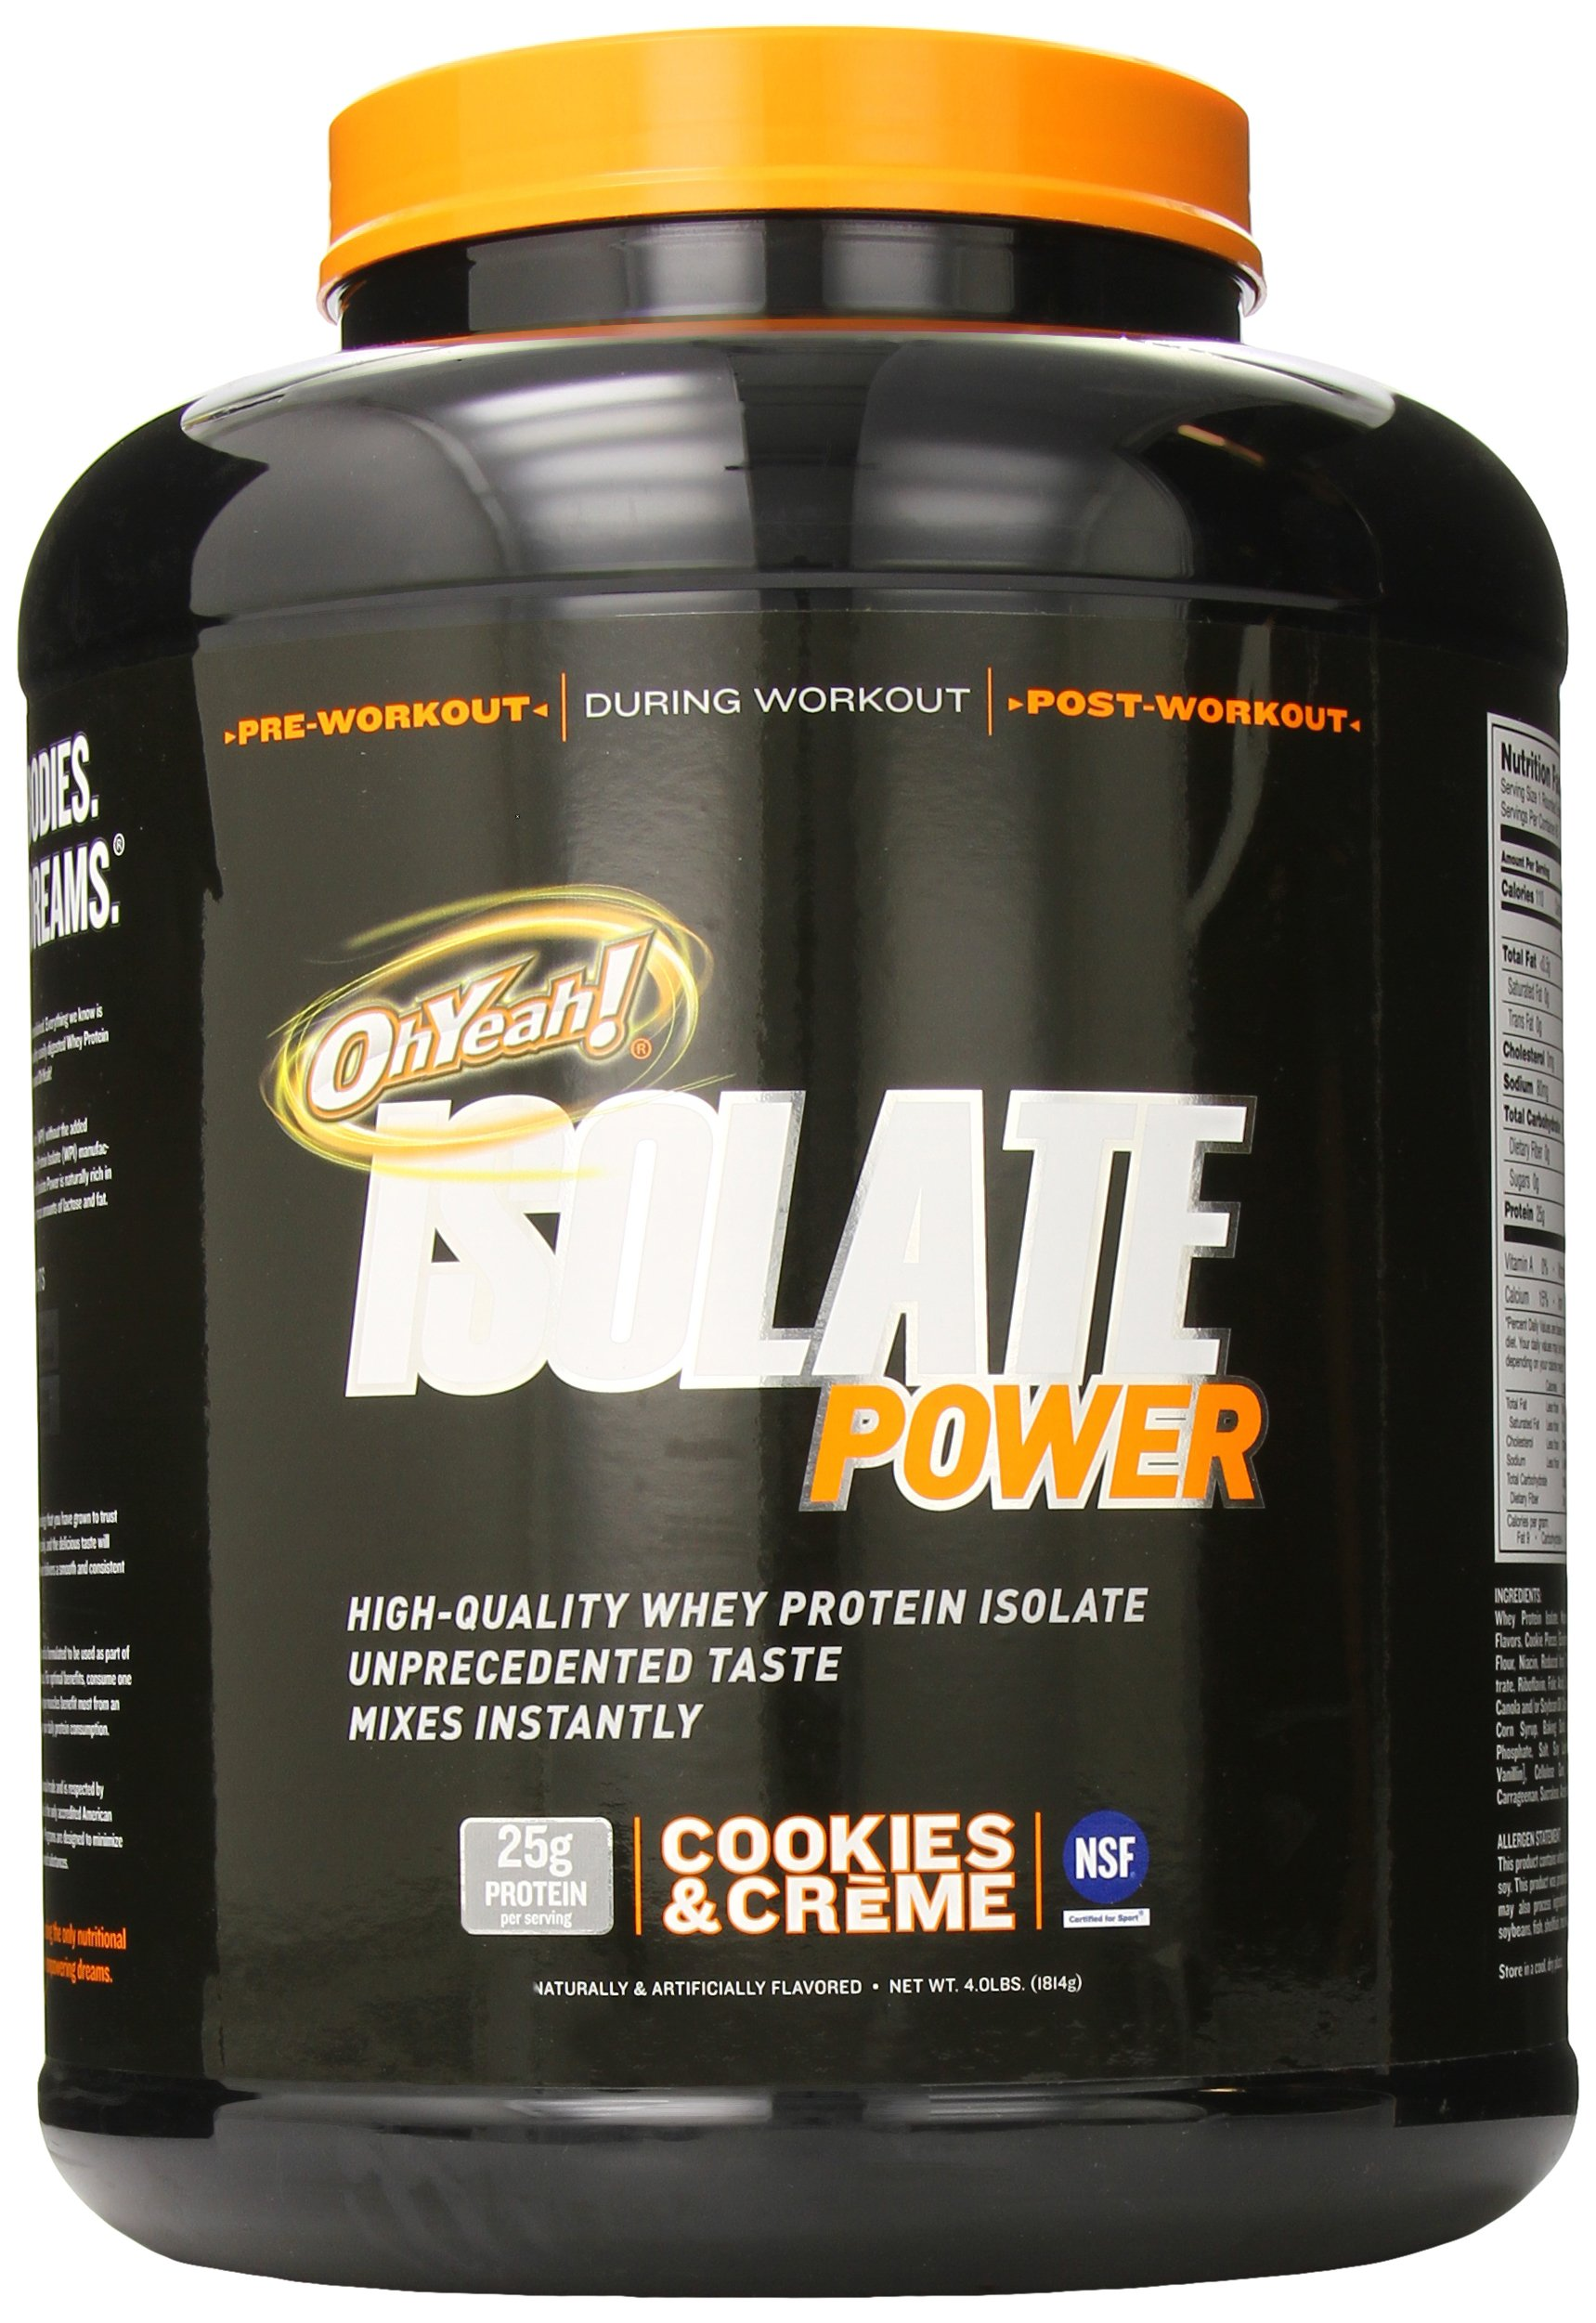 ISS Research OhYeah! Isolate Power, Cookies and Creme, 4 Pound